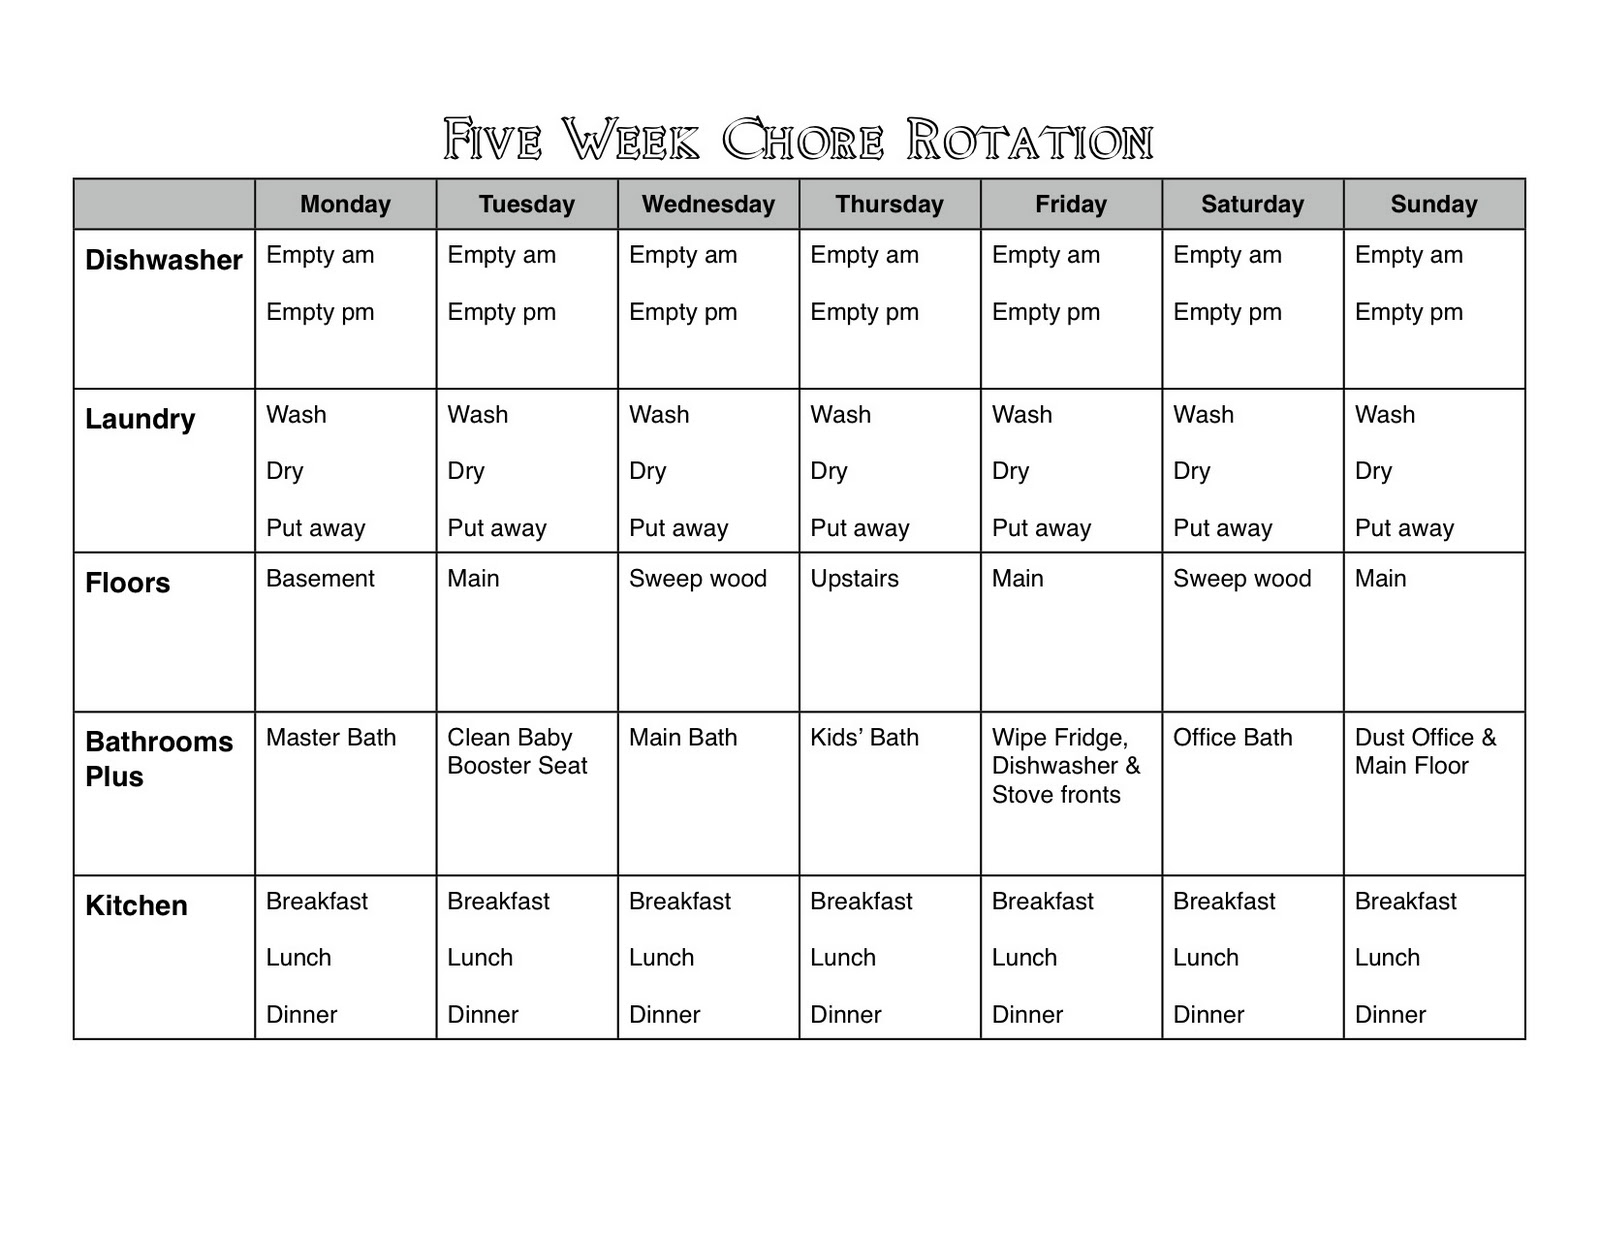 free chore chart free printable chore chart cleaning schedule – Chores Schedule Template